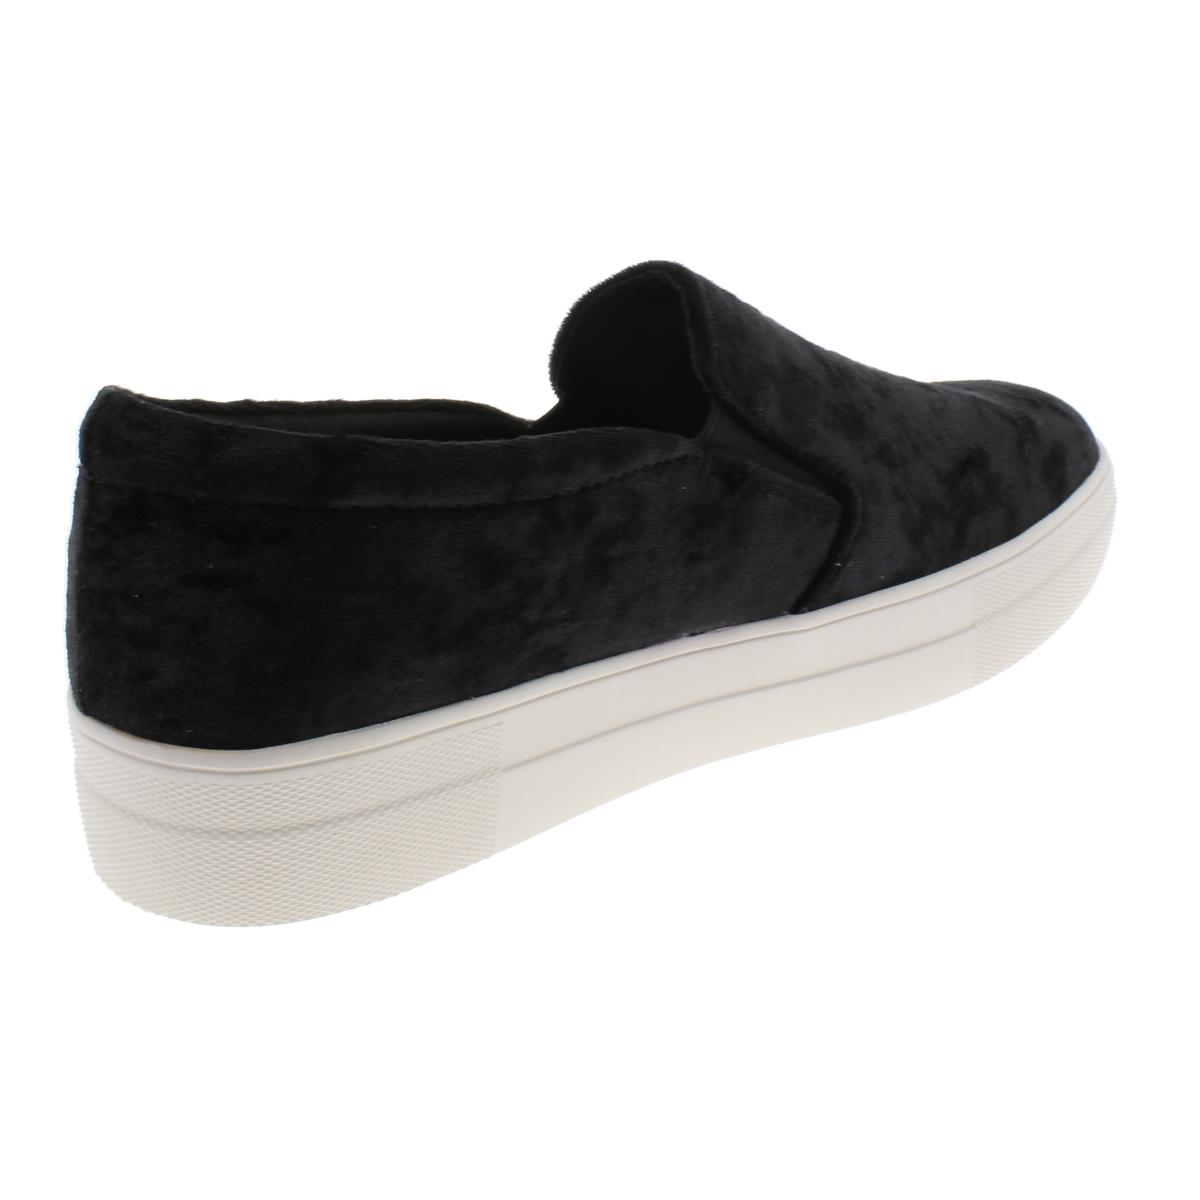 Steve-Madden-Womens-Gills-Classic-Low-Top-Fashion-Loafers-Sneakers-BHFO-8263 thumbnail 4